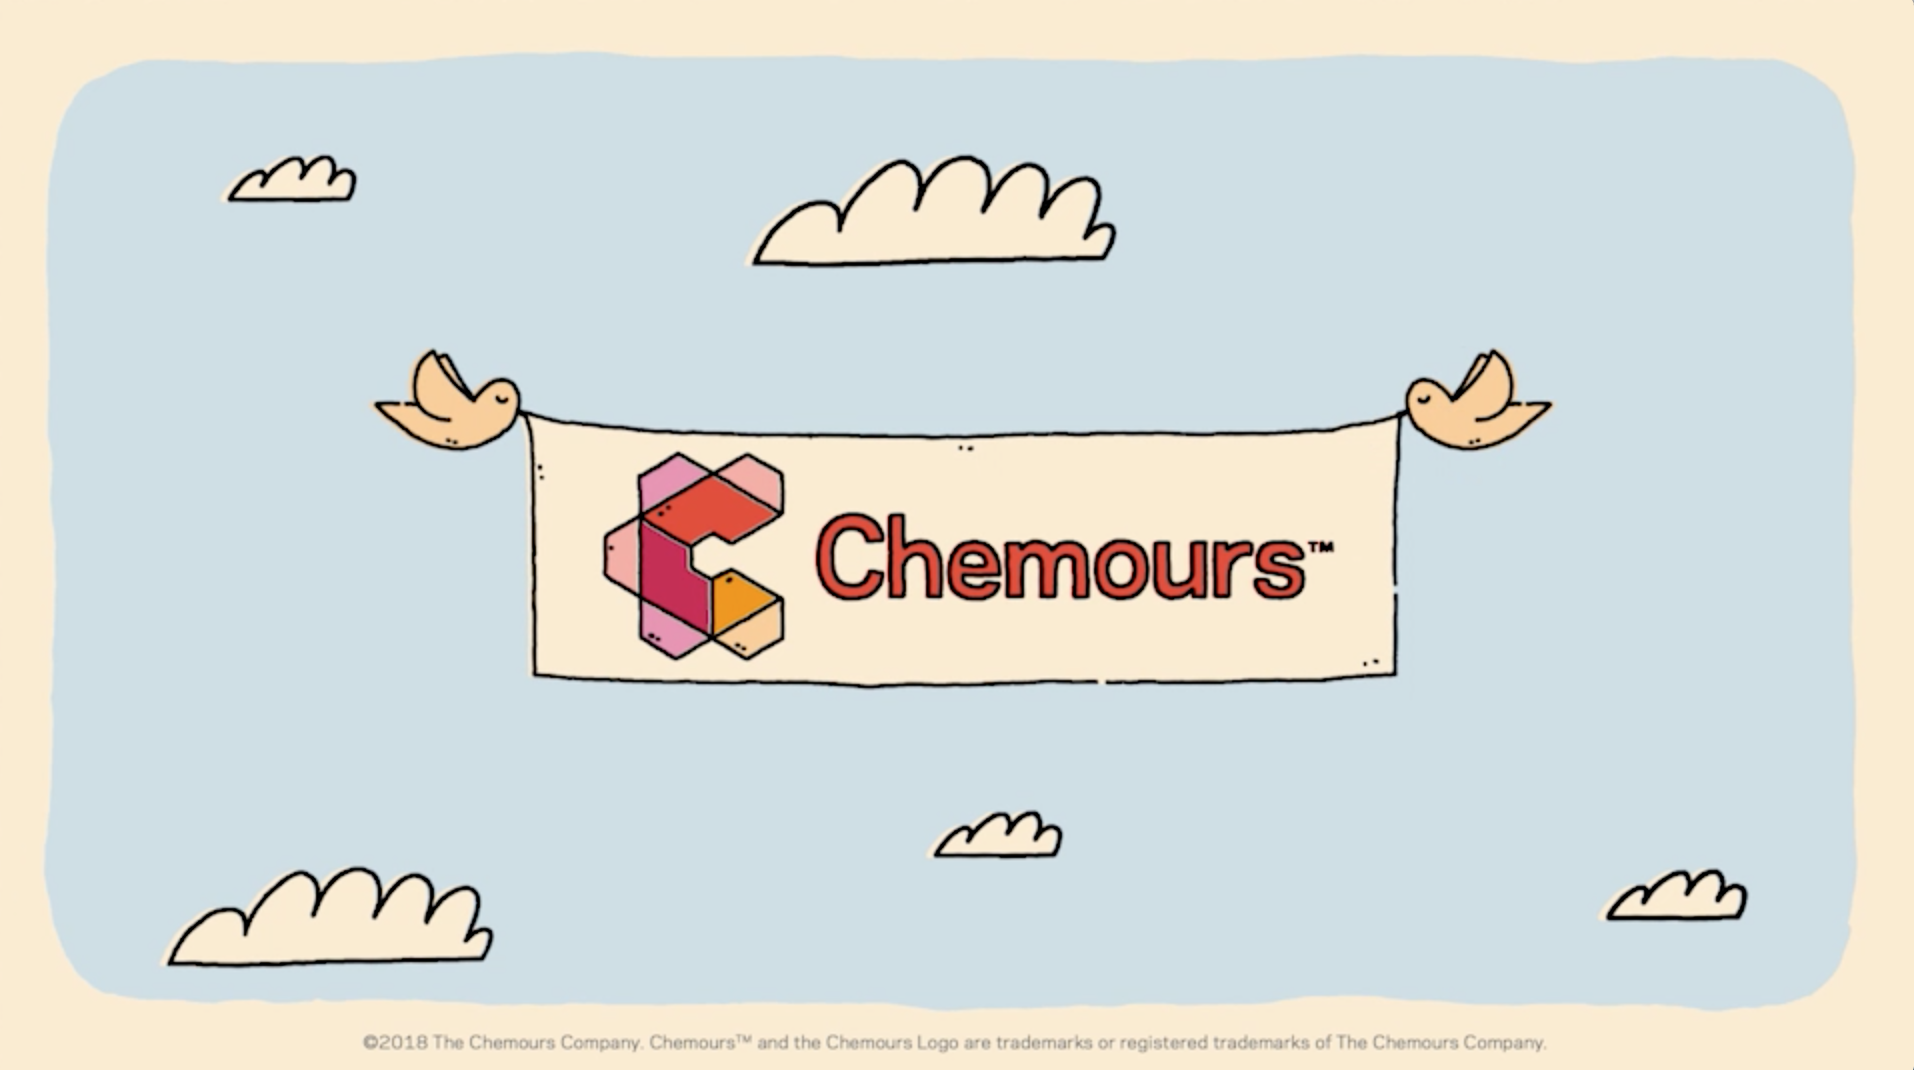 Chemours National Inventors Month 2018: